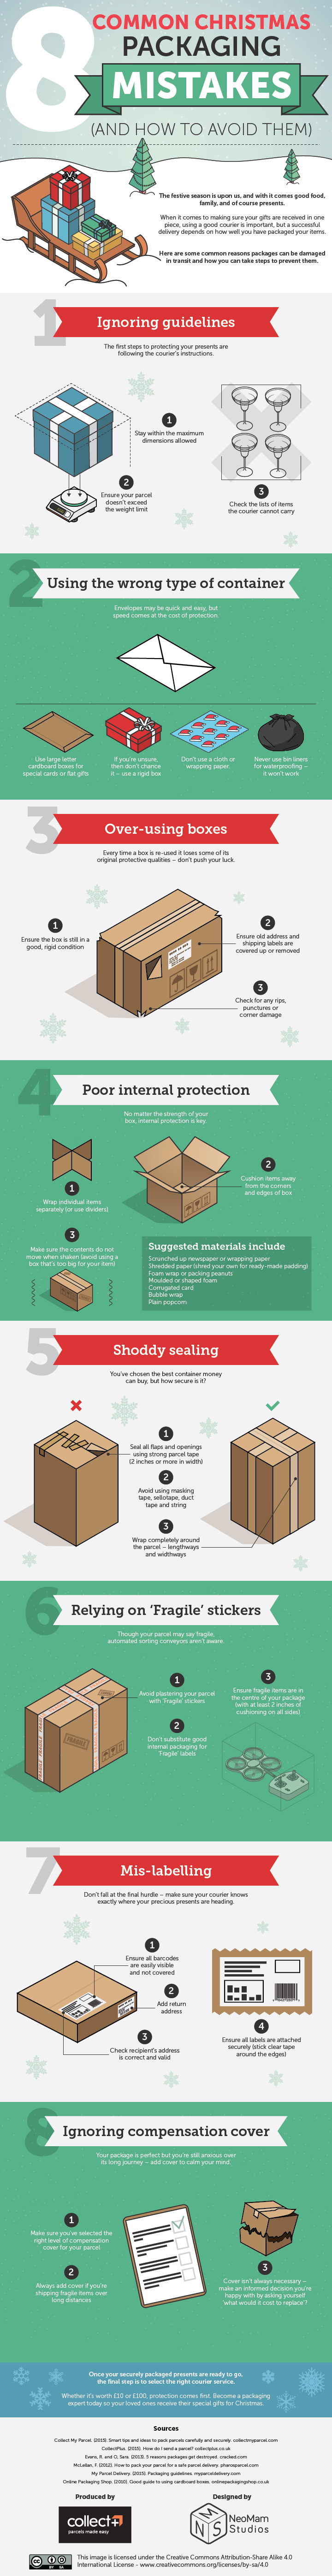 Common Christmas Packaging Mistakes